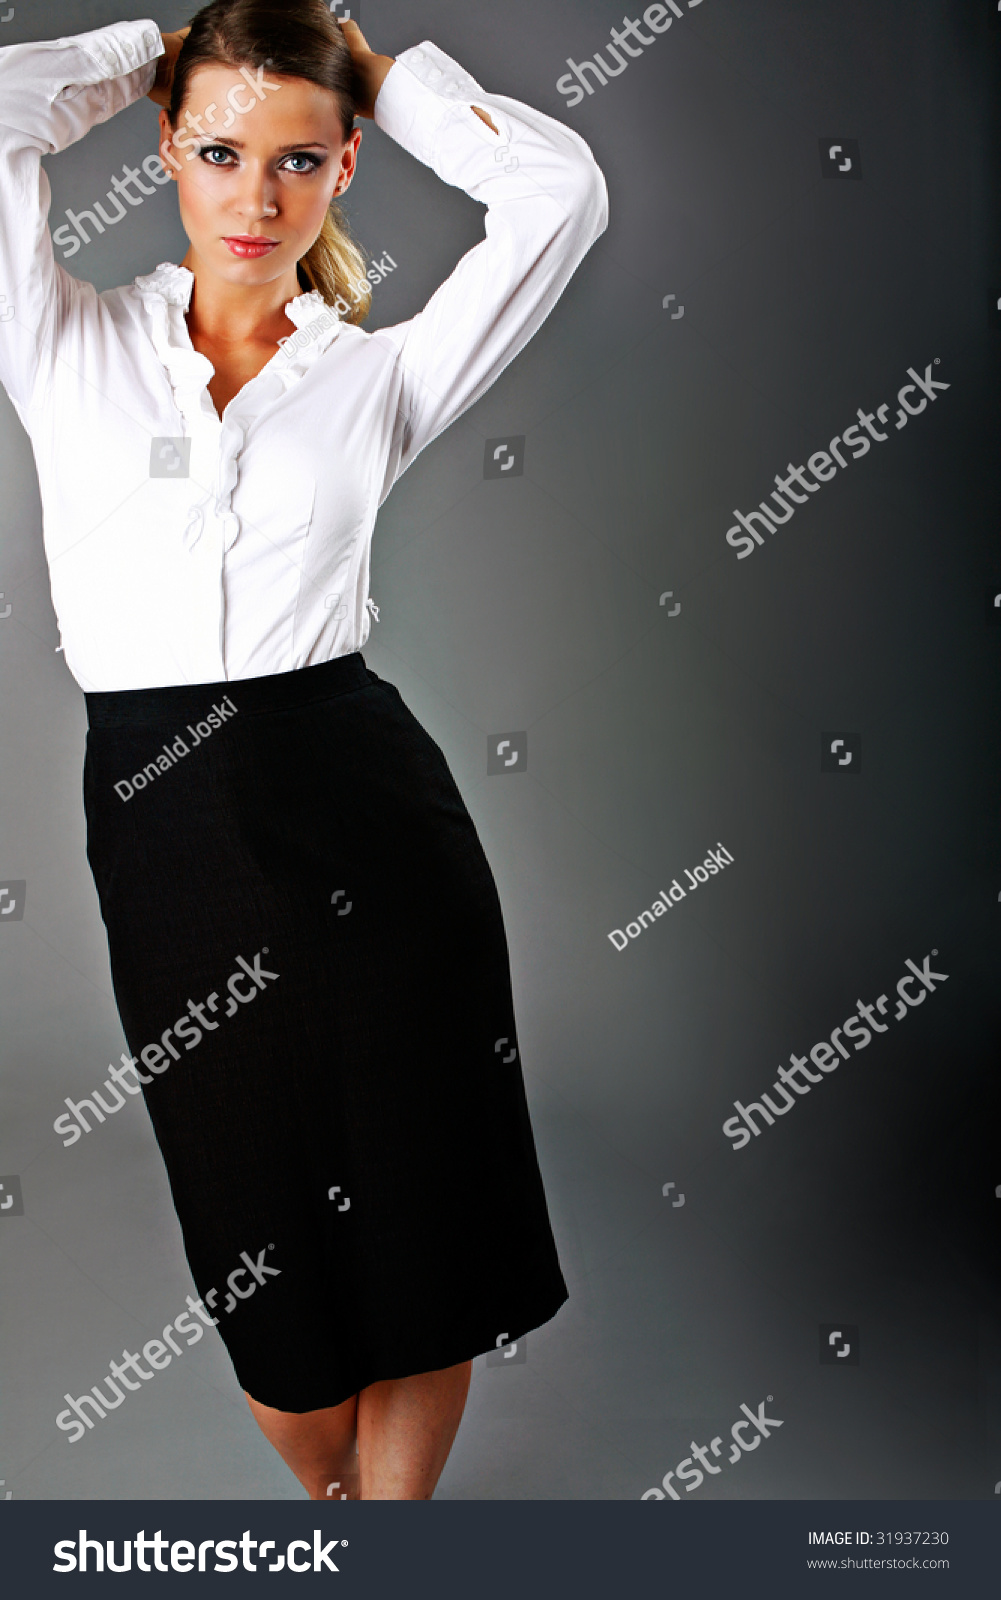 dressed for success in black skirt and white blouse stock photo save to a lightbox